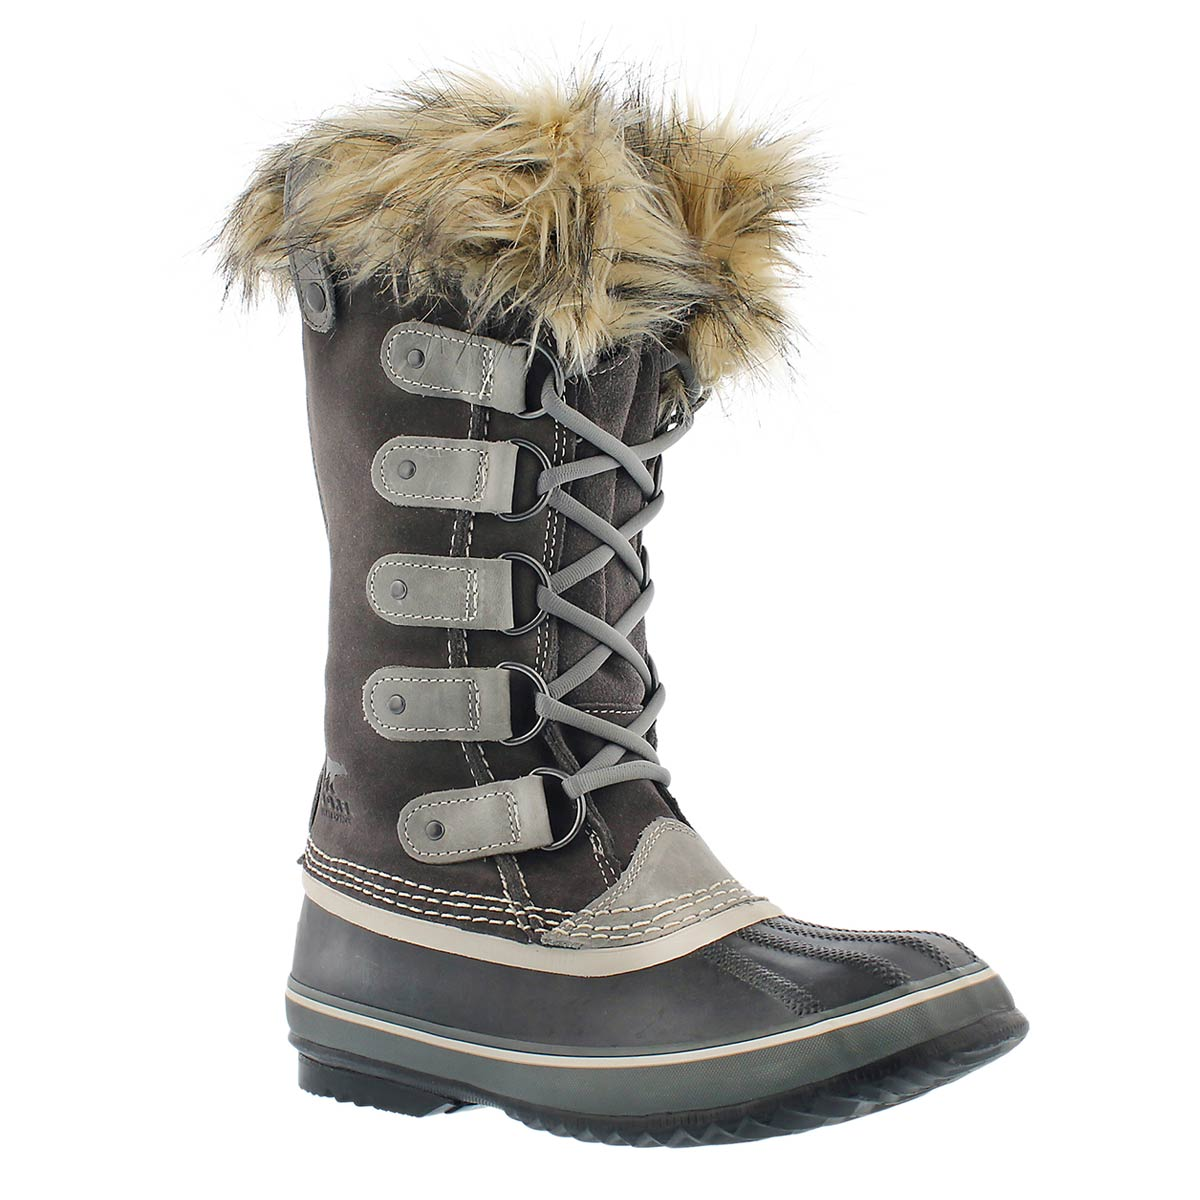 Botte hiver JOAN OF ARCTIC, schiste, fem